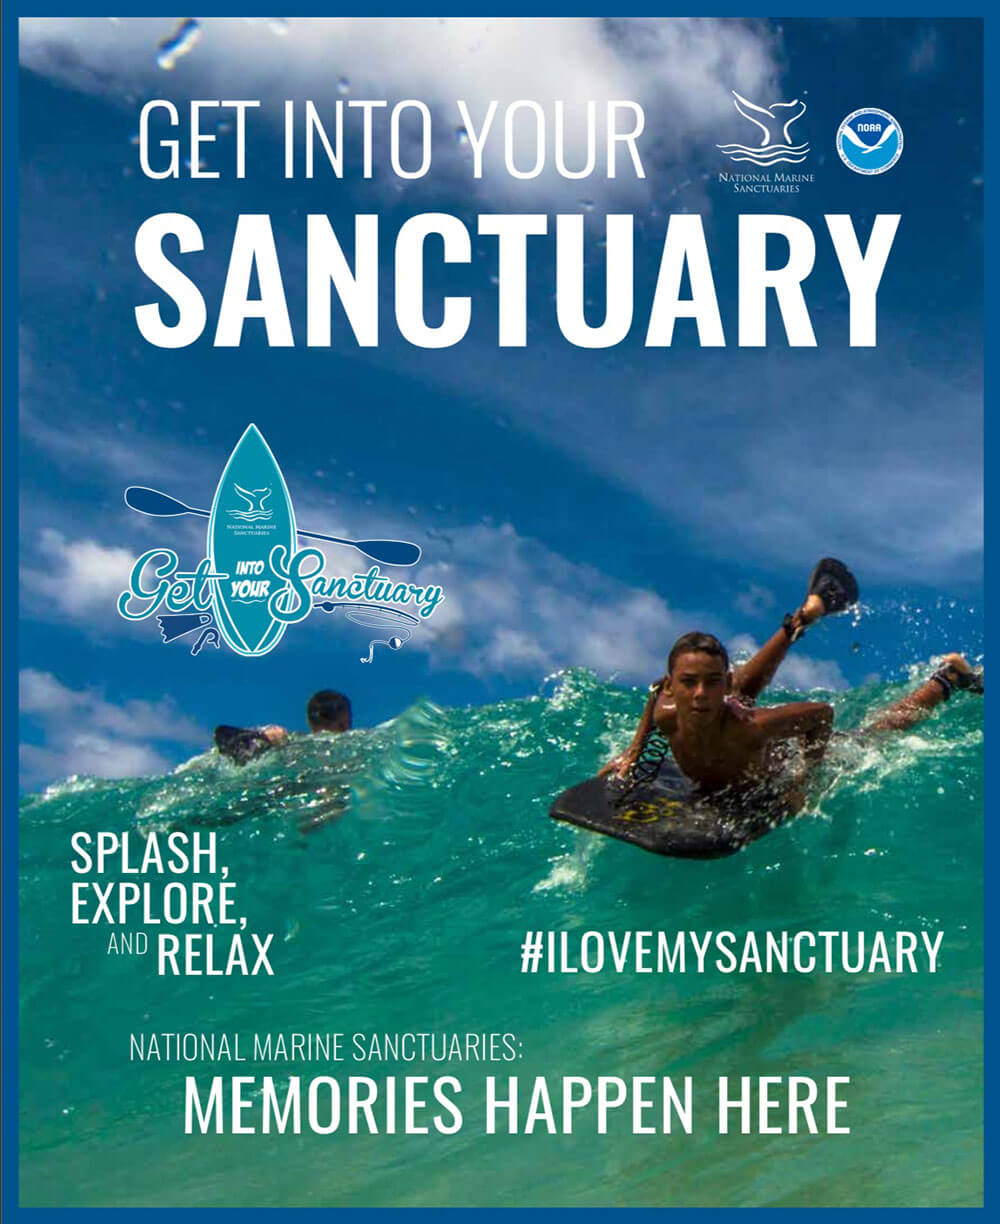 get into your sanctuary magazine - kid surfing